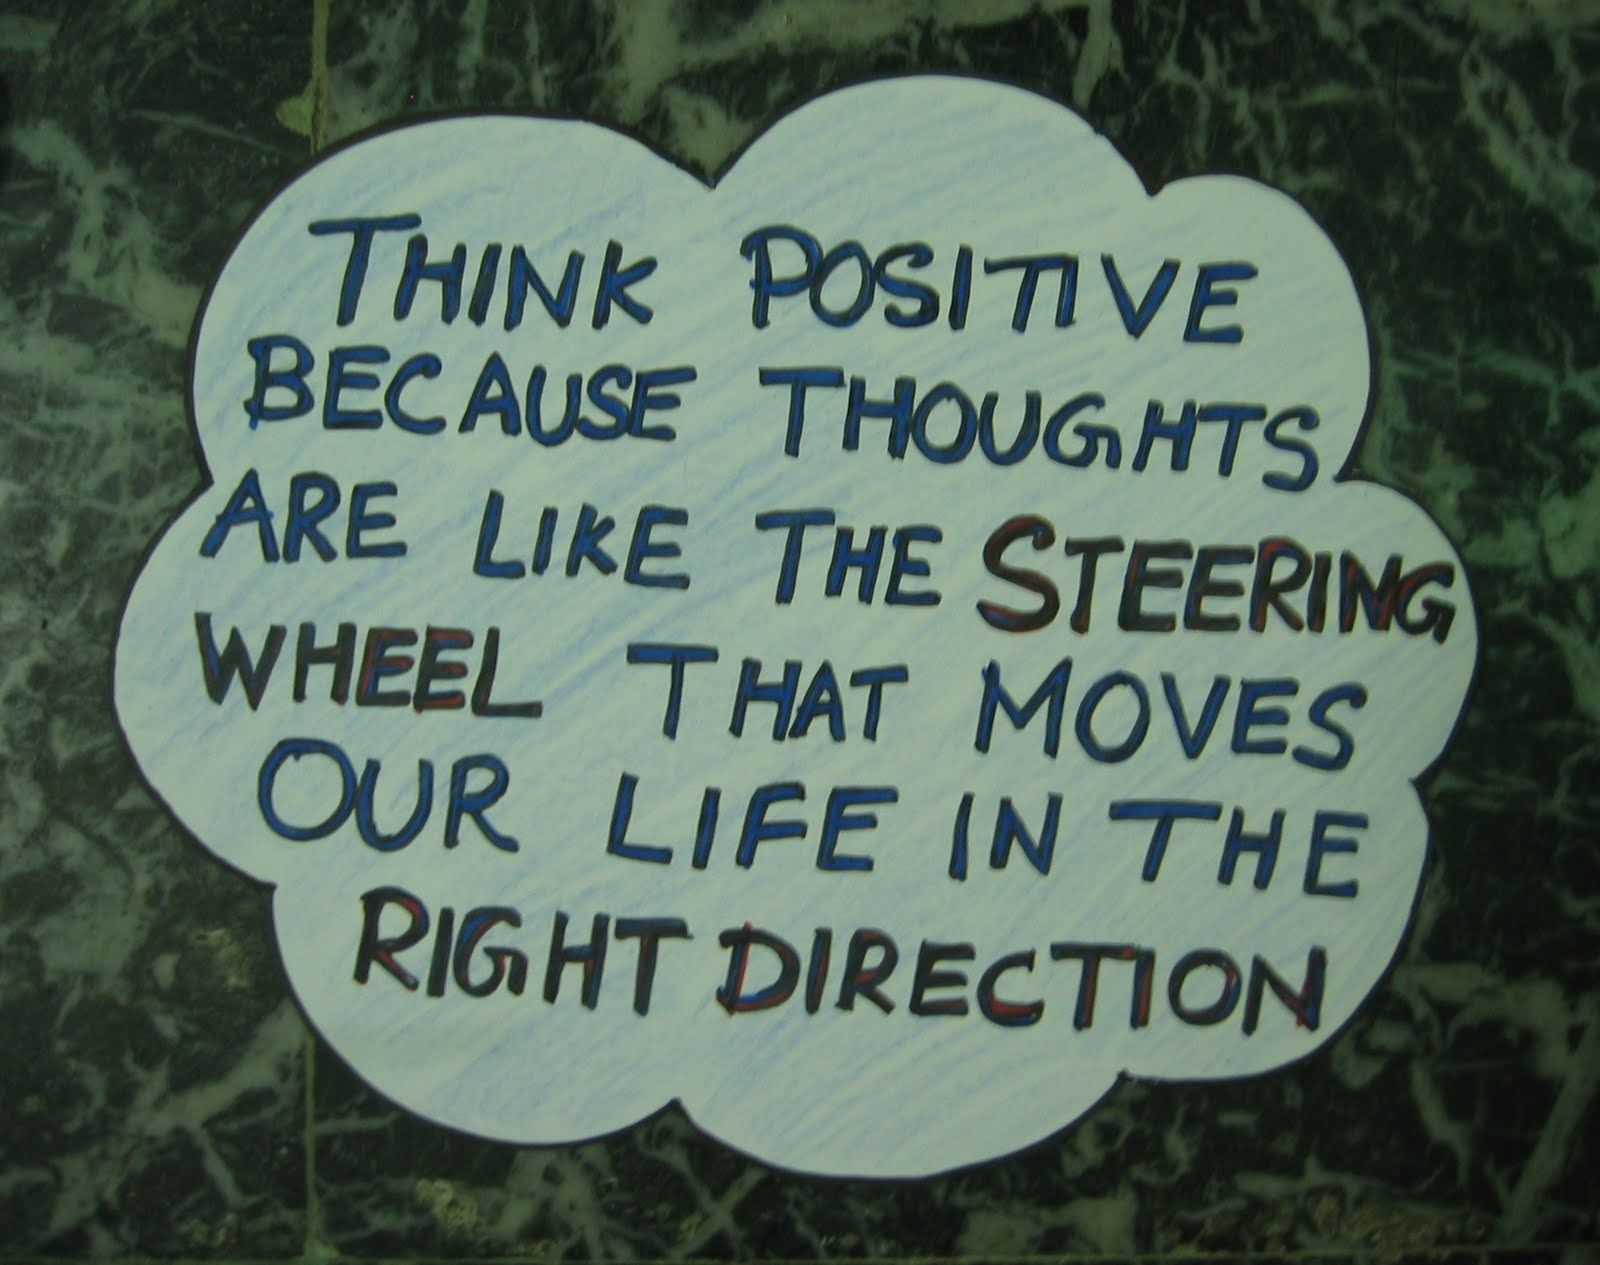 think positive thoughts pictures photos and images for